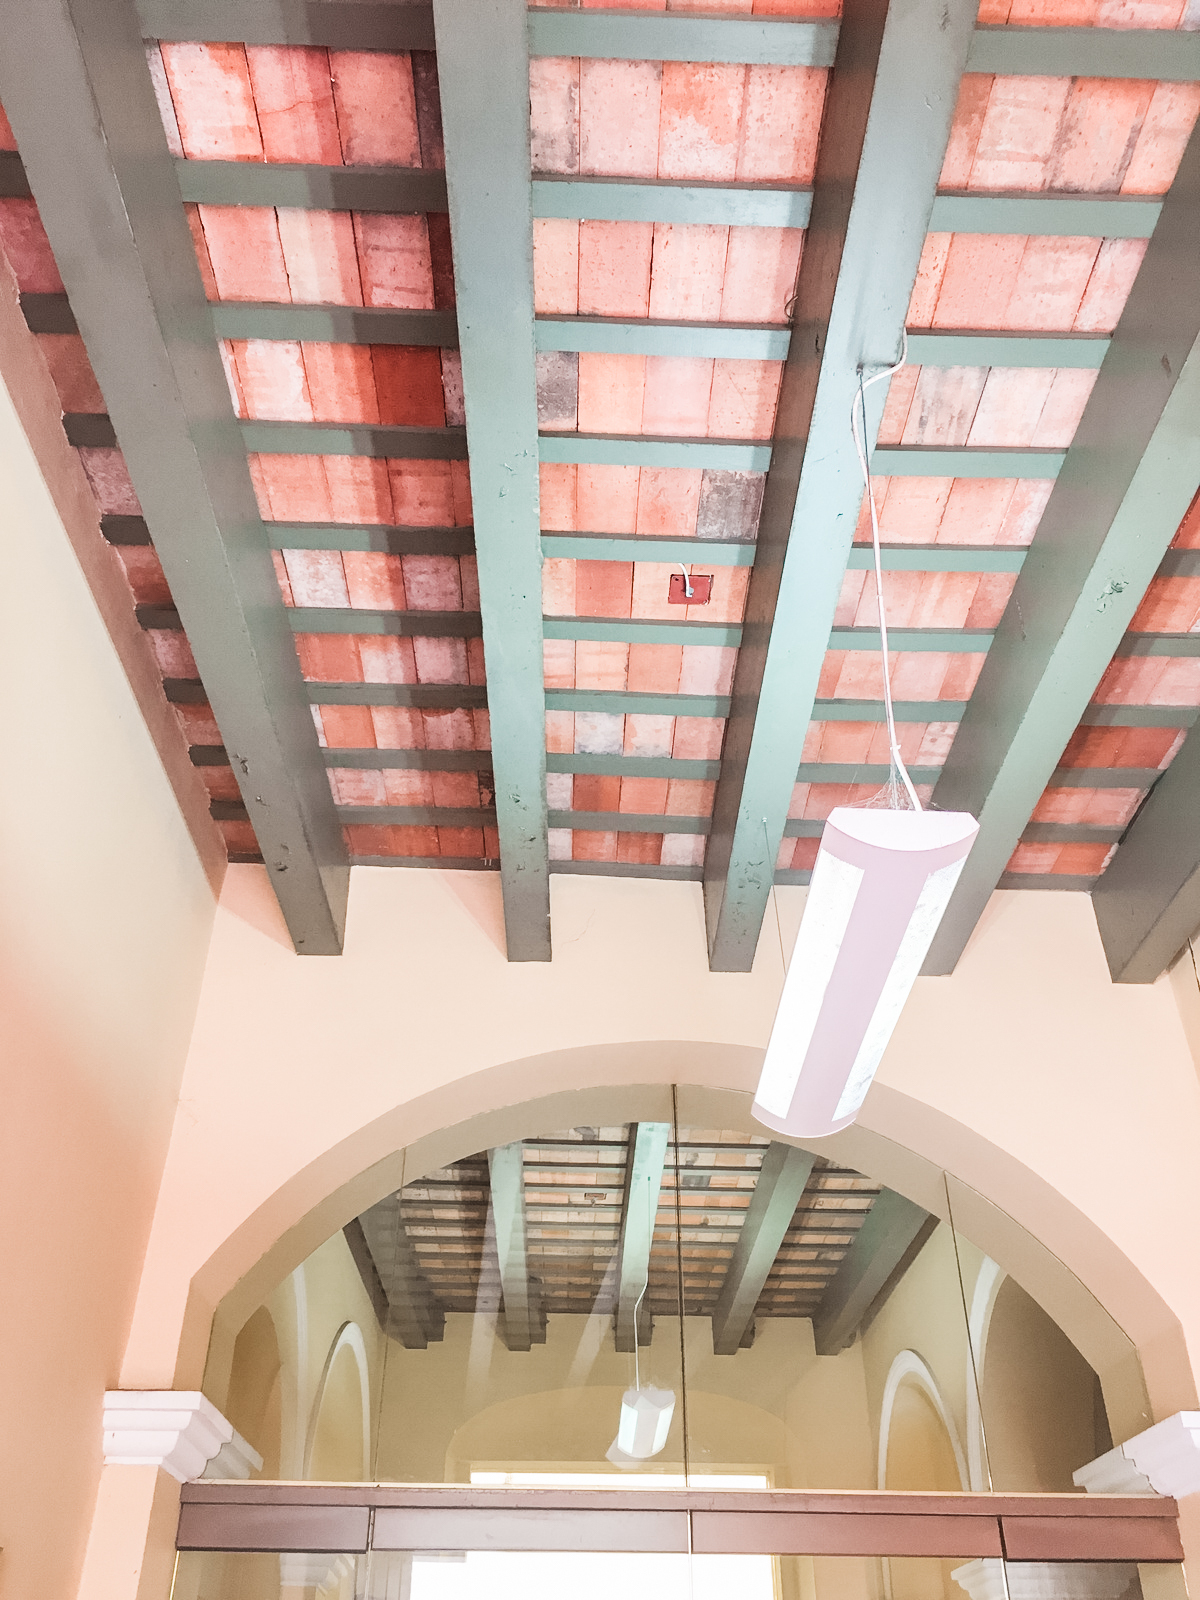 Check out this ceiling! I'm pretty sure it's an adobe brick 🧱 ceiling on top of simple wood framing. So cool! 😎 It works as a thermal mass, absorbing and holding heat during the day 🌞, and letting it out at night 🌚. Plus I'm sure it's a great sound barrier. And it's SO gorgeous. 😍 We saw a few buildings like this in Old San Juan 🌴. I did a little research 🕵🏻♀️ but couldn't find much information on how it's built. If you know more about it, 🤔 please let me know! ps. This is the last photo from Puerto Rico, I swear. 😜